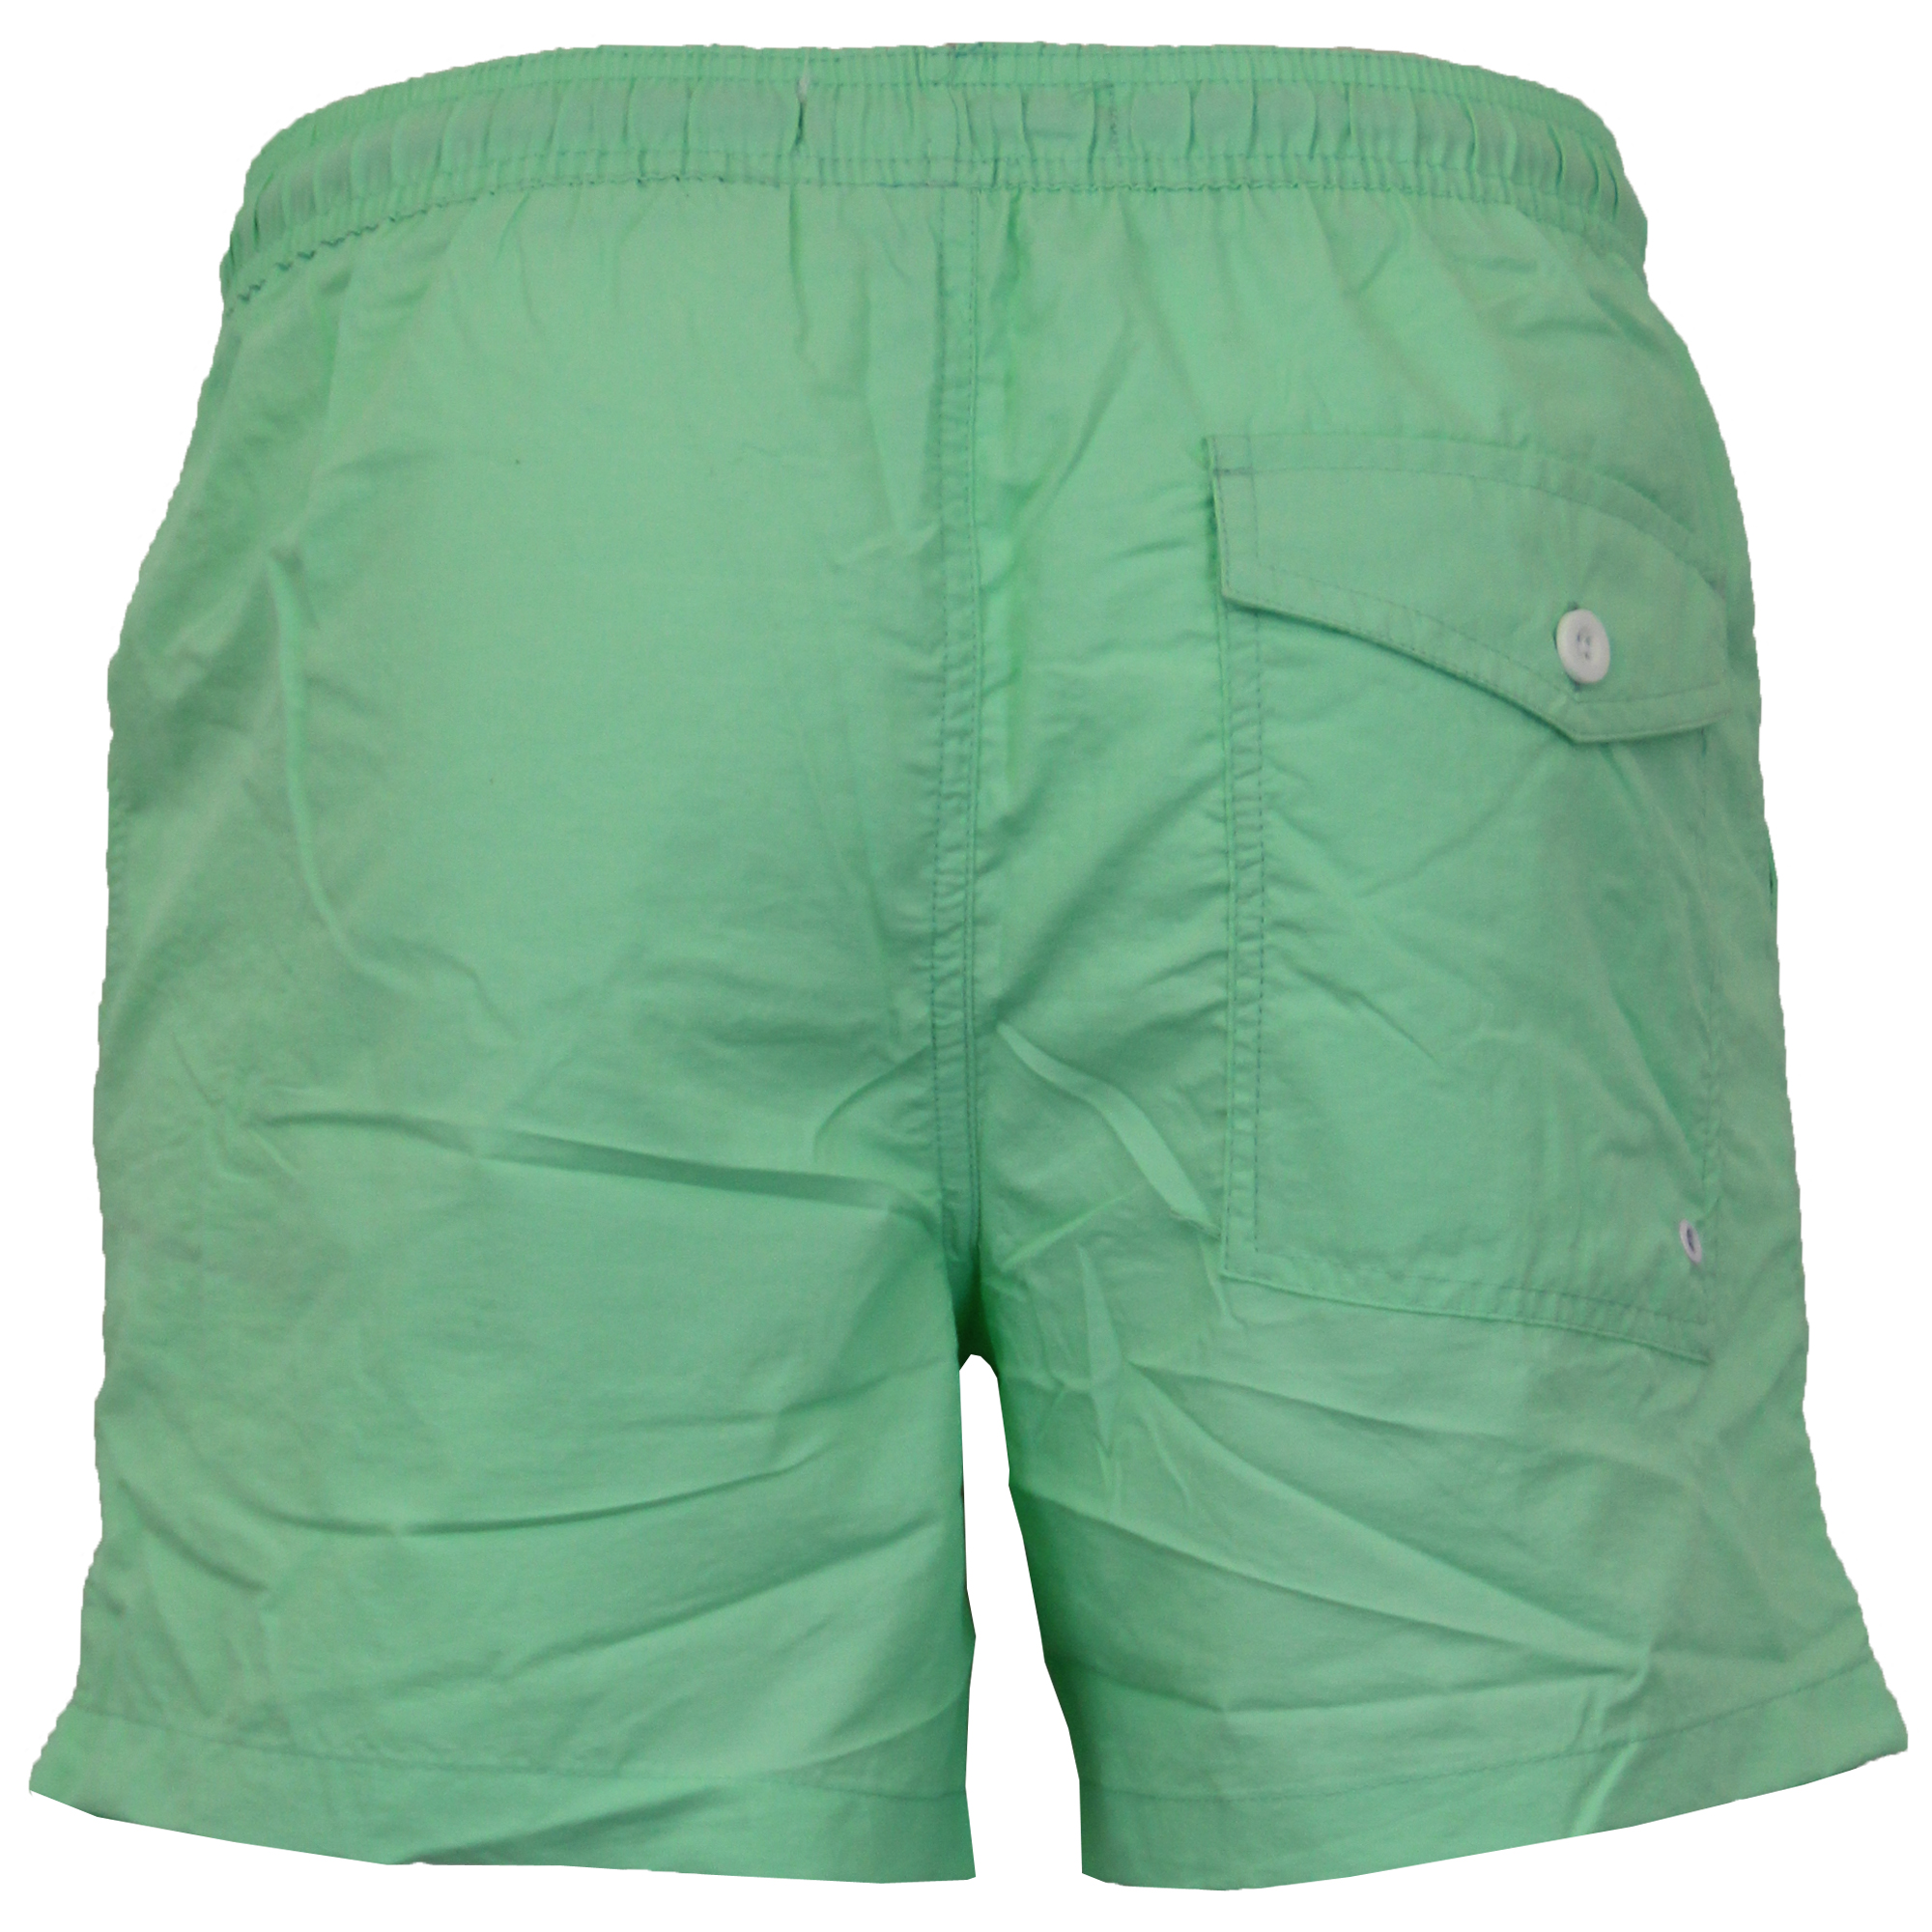 Mens-Swim-Board-Shorts-By-Brave-Soul-Mesh-Lined-New thumbnail 24